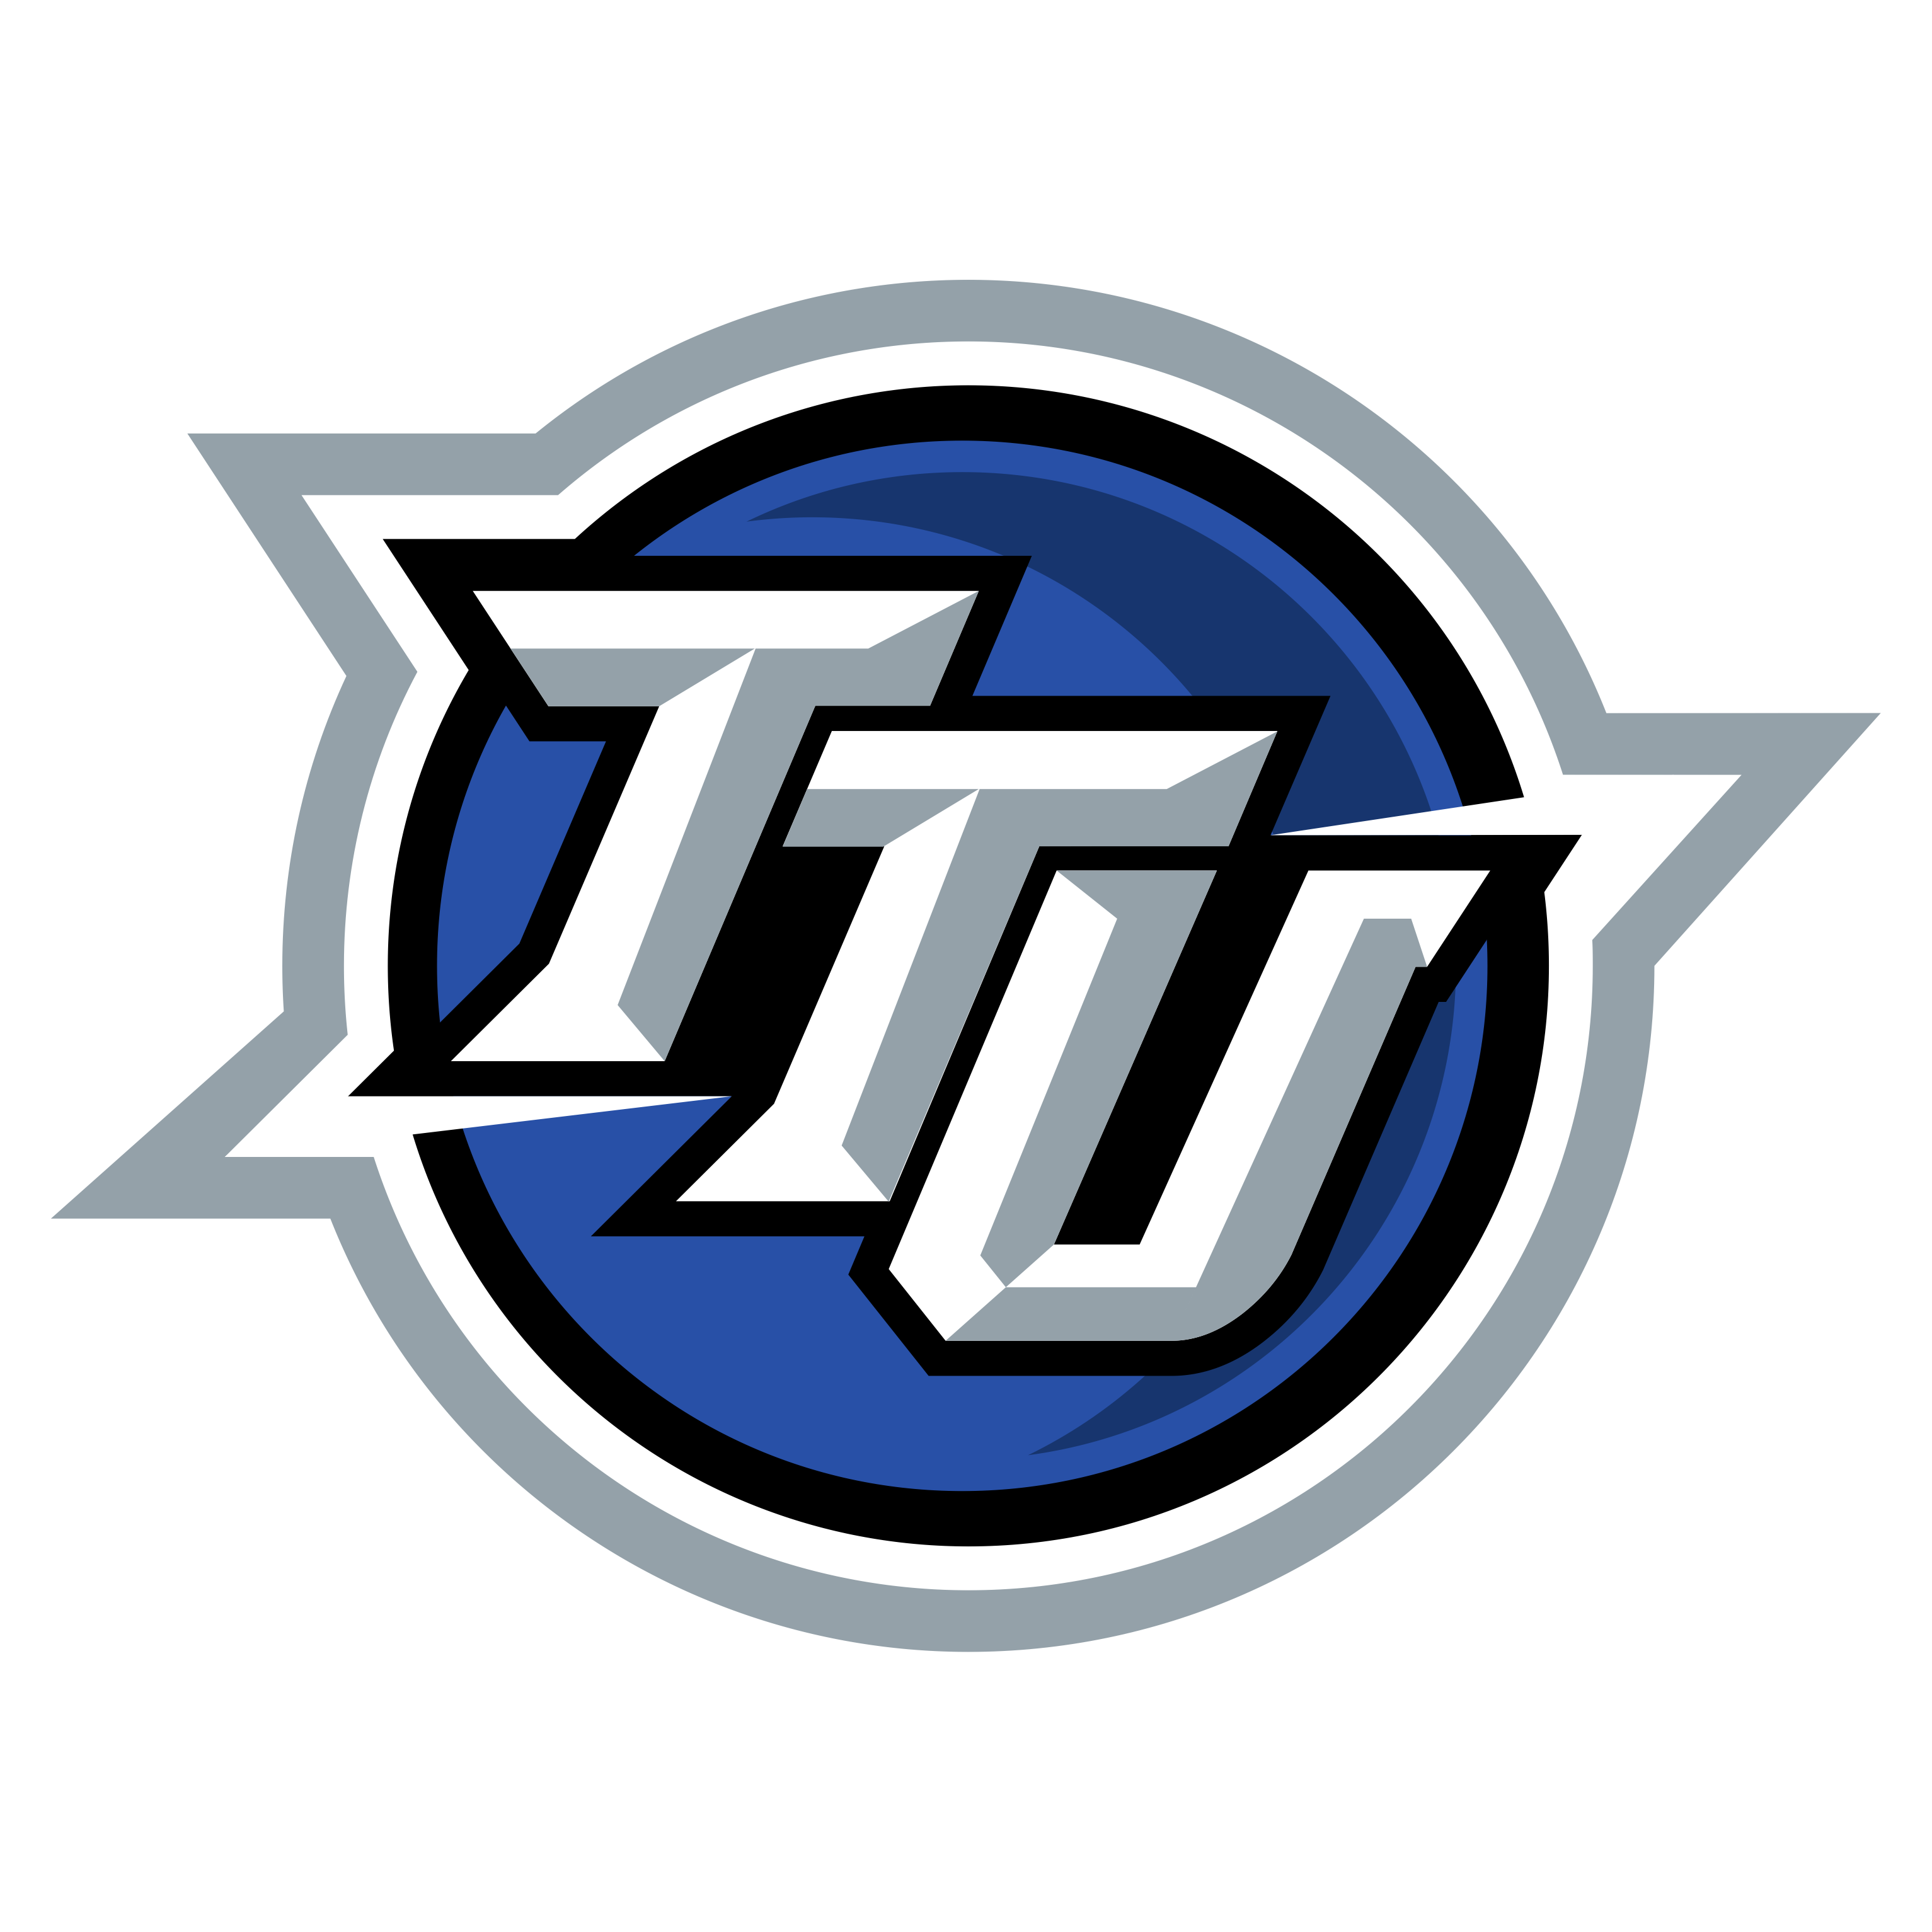 TTU Logo - Transparent and Cropped